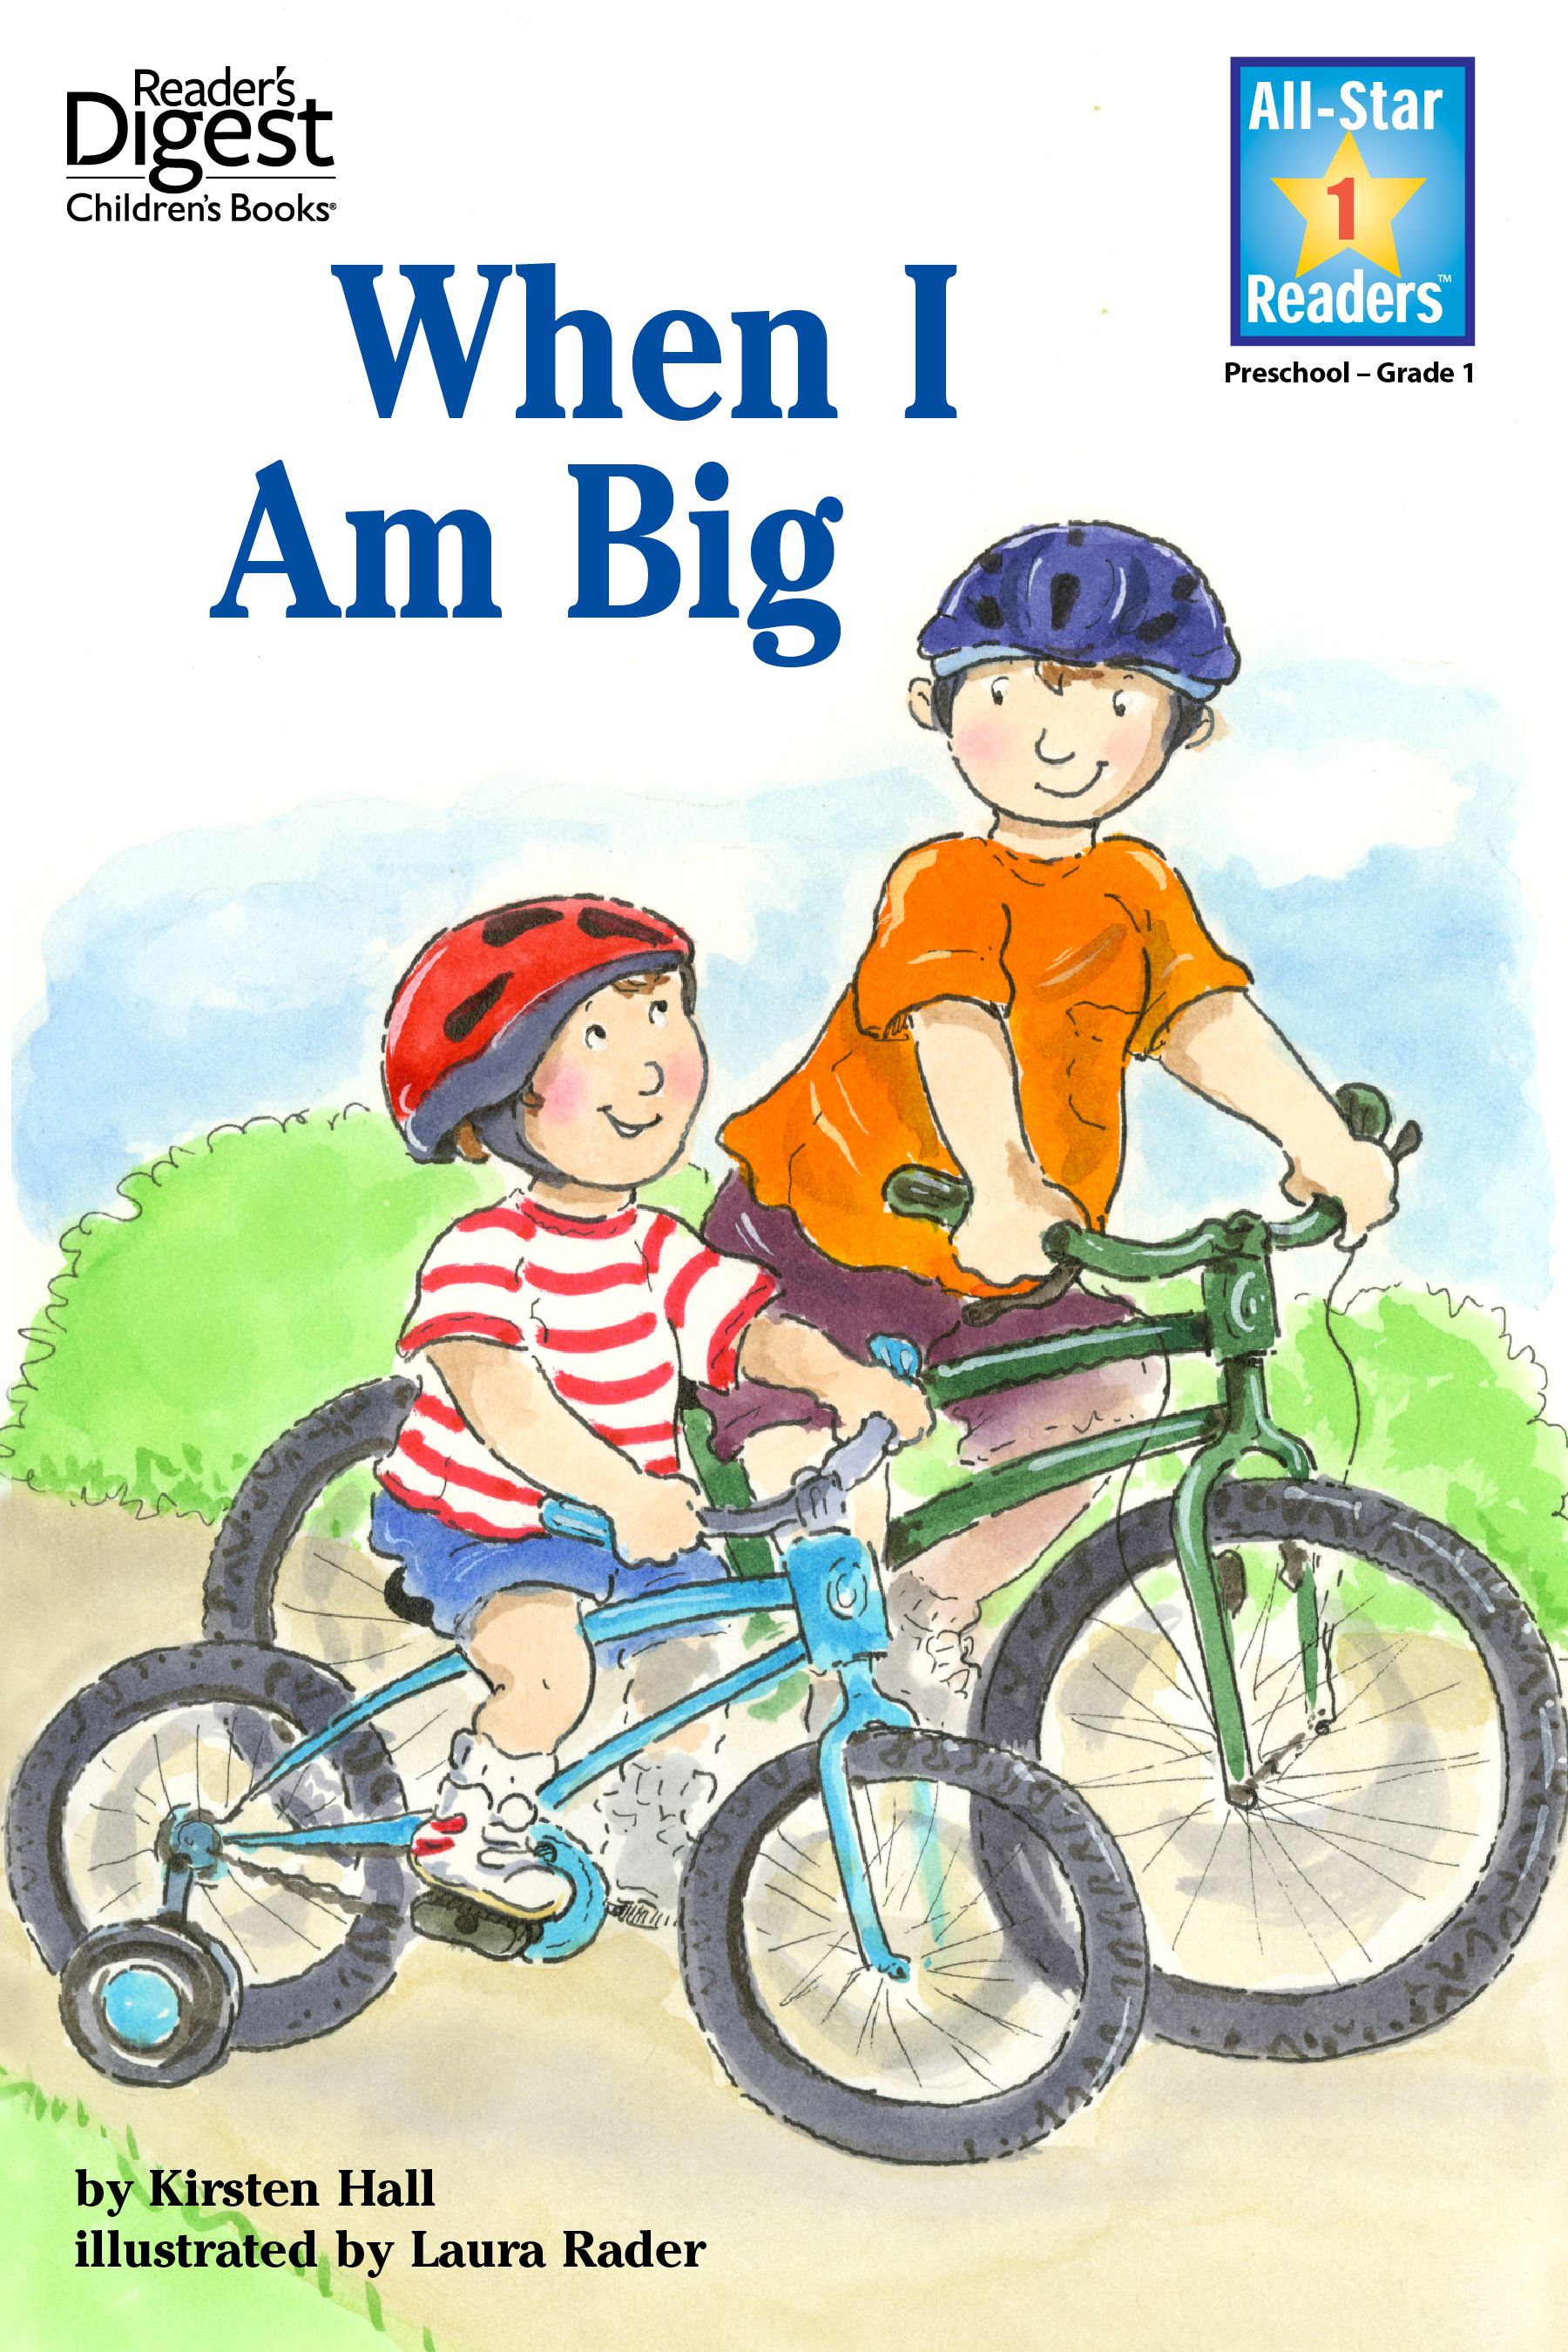 When I Am Big (Reader's Digest) (All-Star Readers) By: Mary Packard,Laura Rader